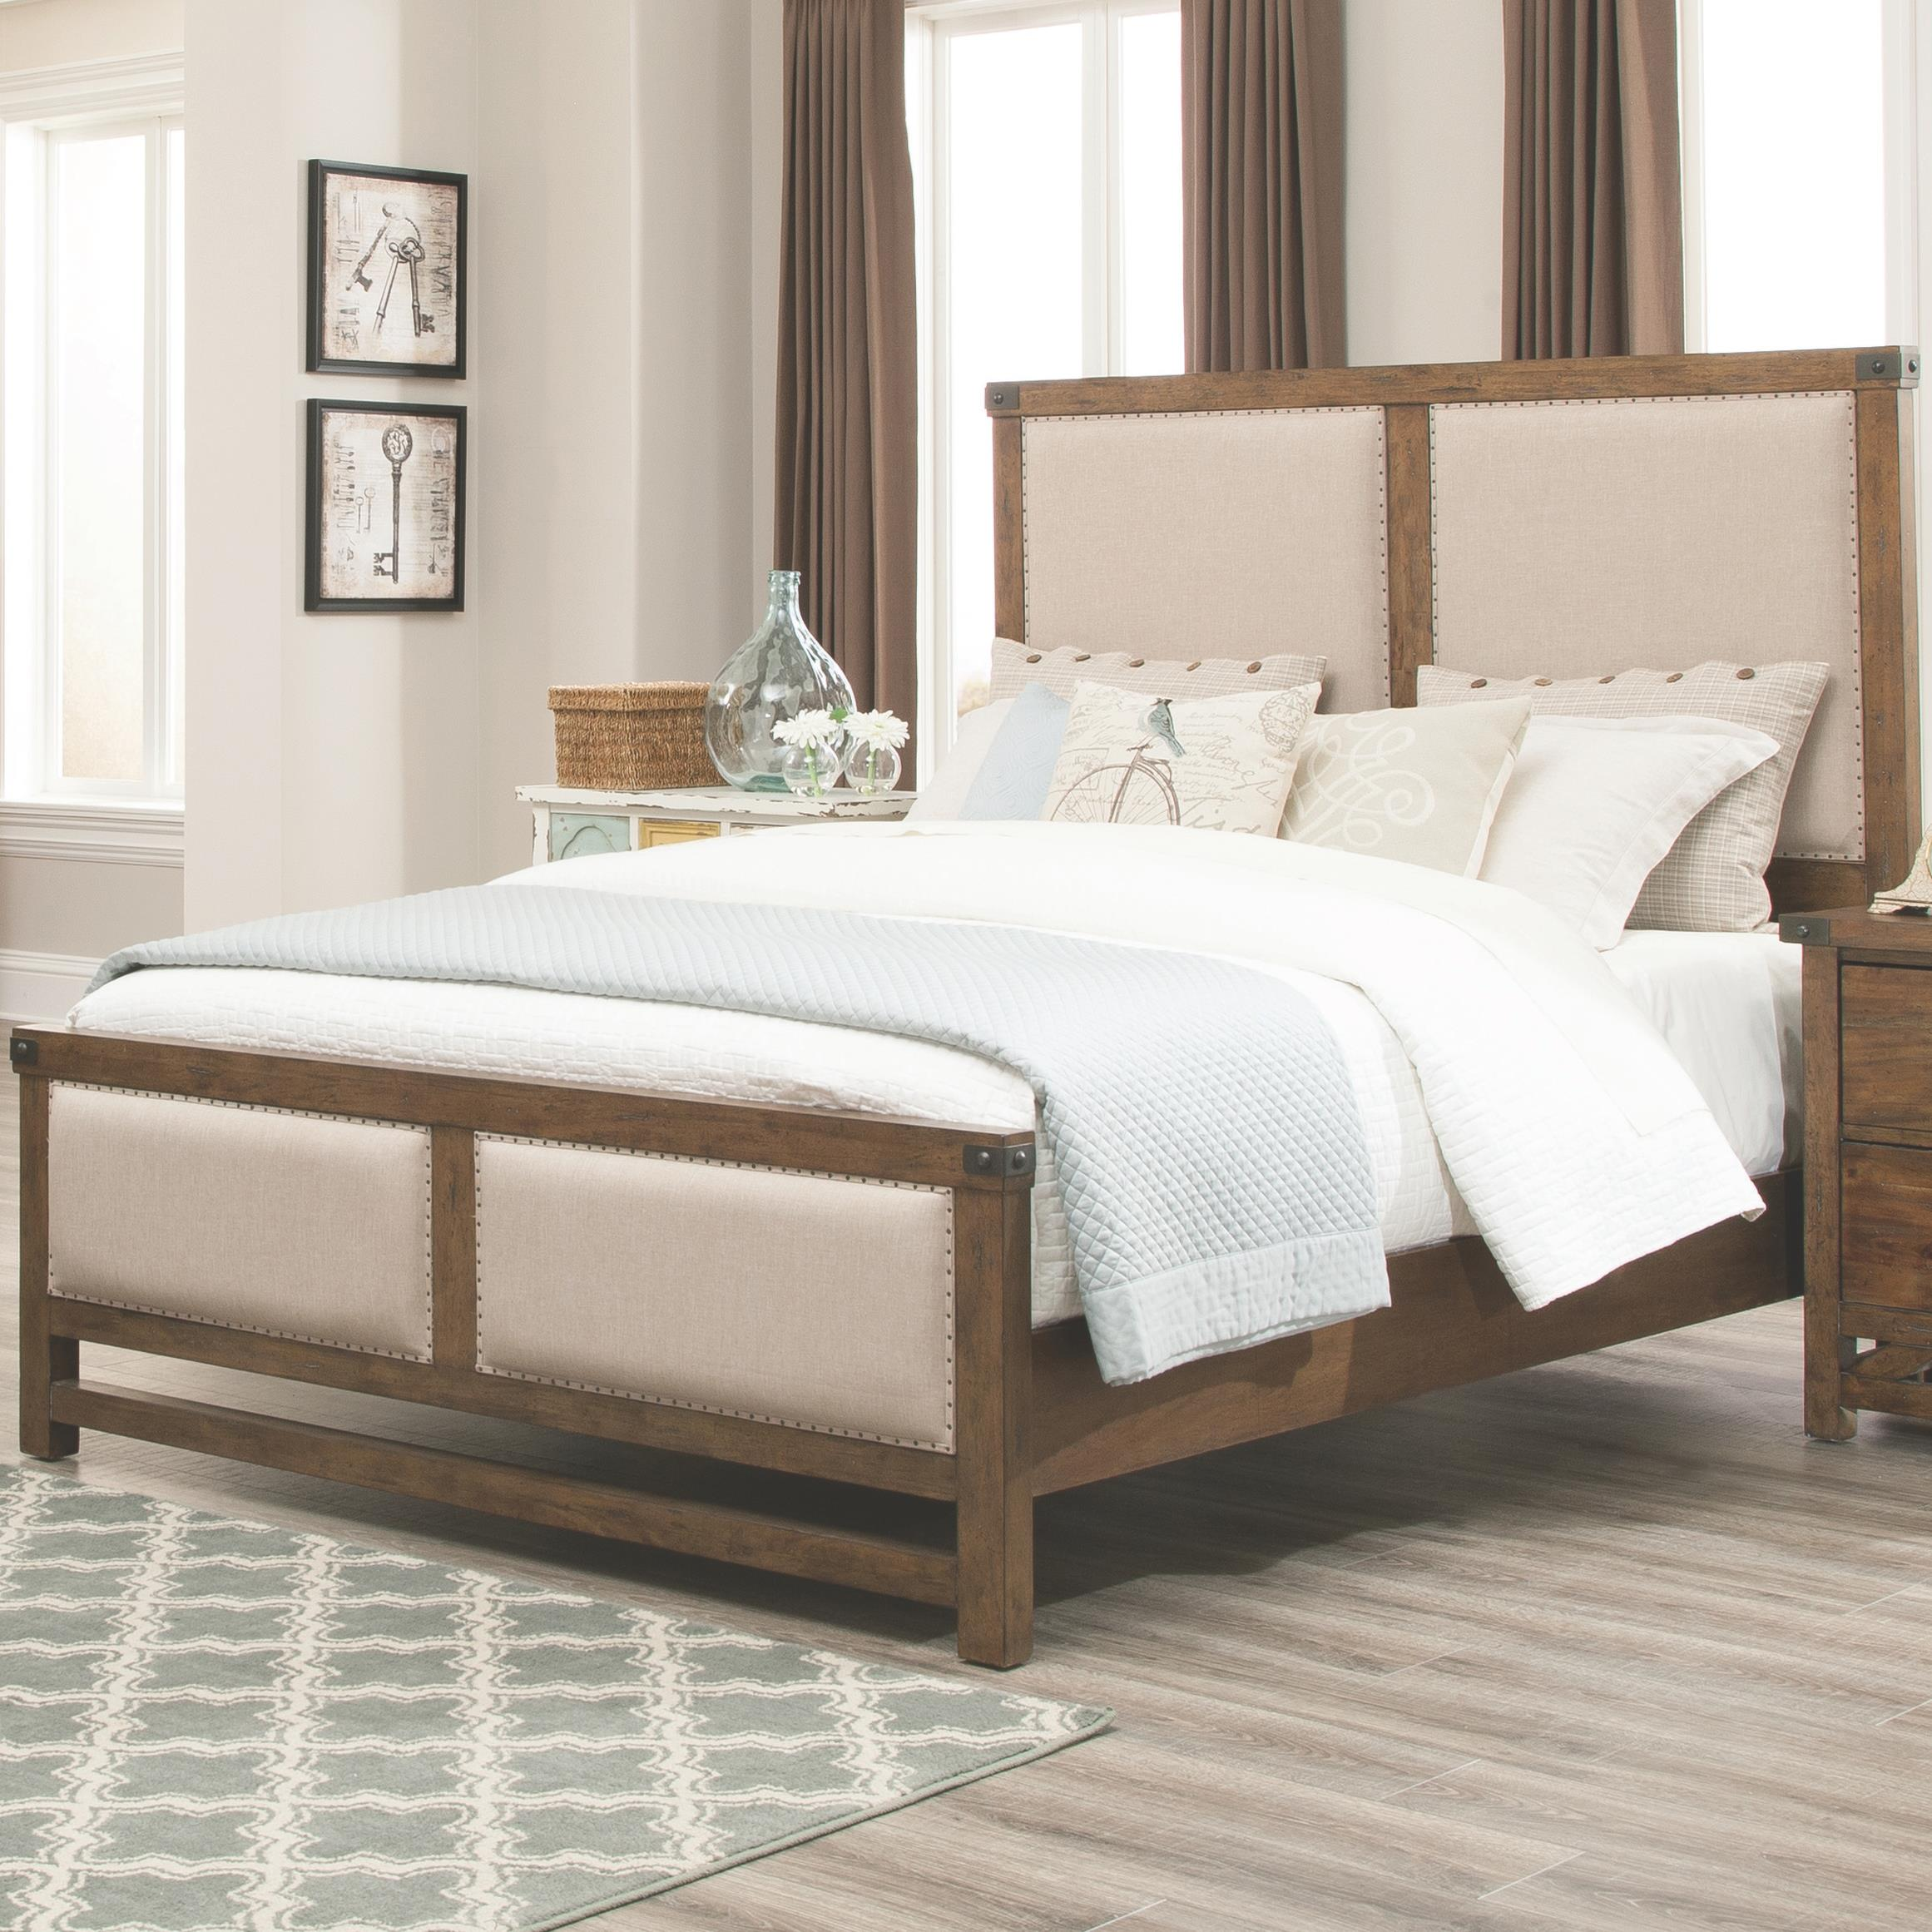 Coaster Bridgeport King Bed - Item Number: 204171KE